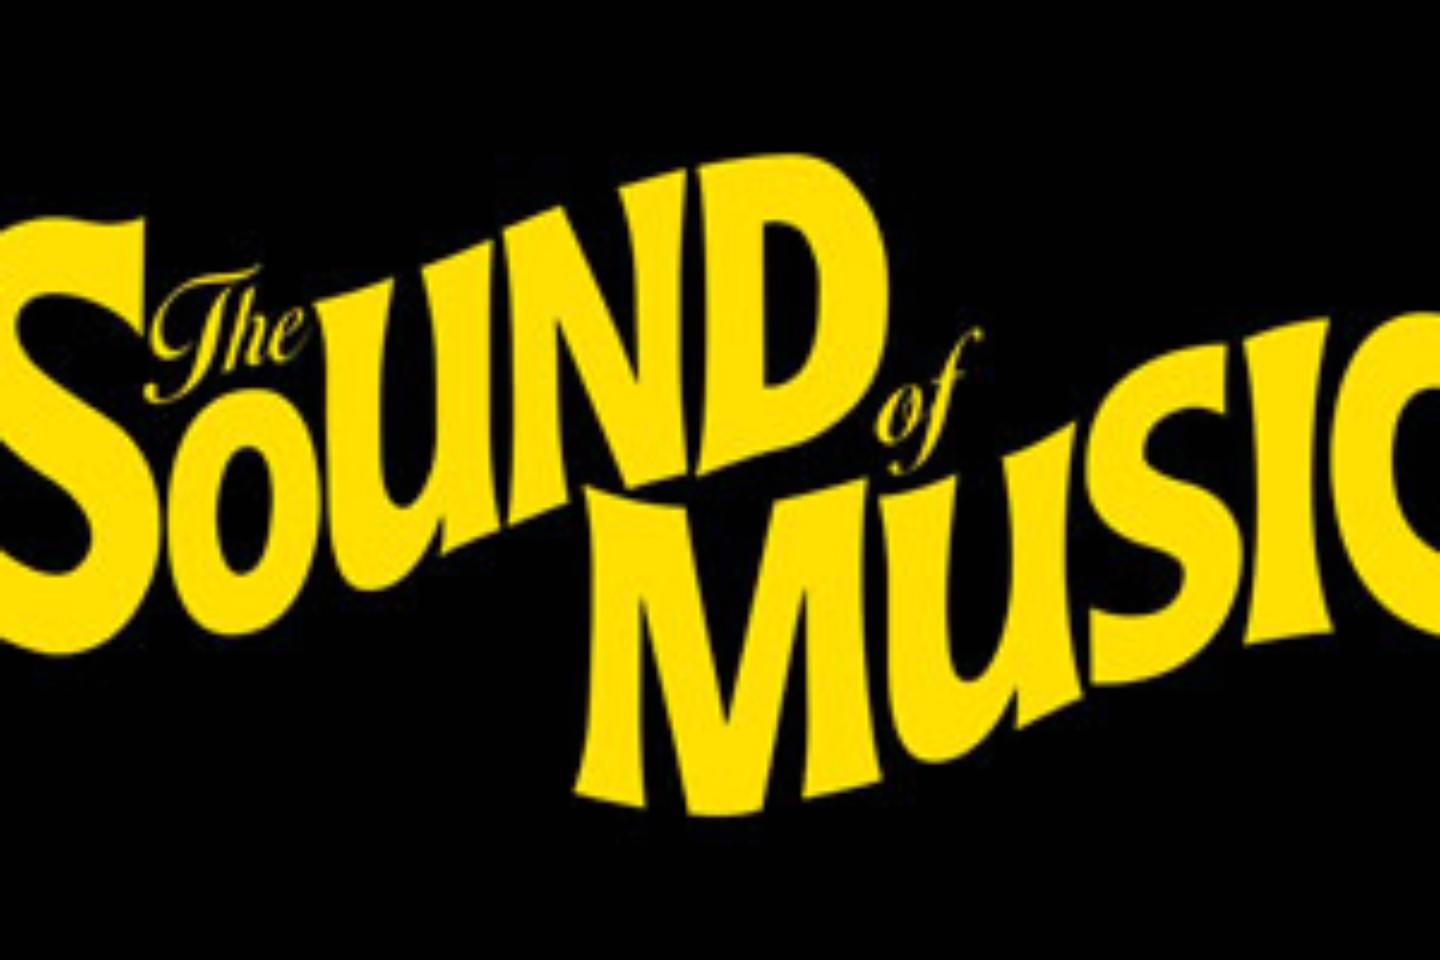 Sound Of Music Tour 2020 The Sound of Music Tickets | Buy or Sell The Sound of Music Tour